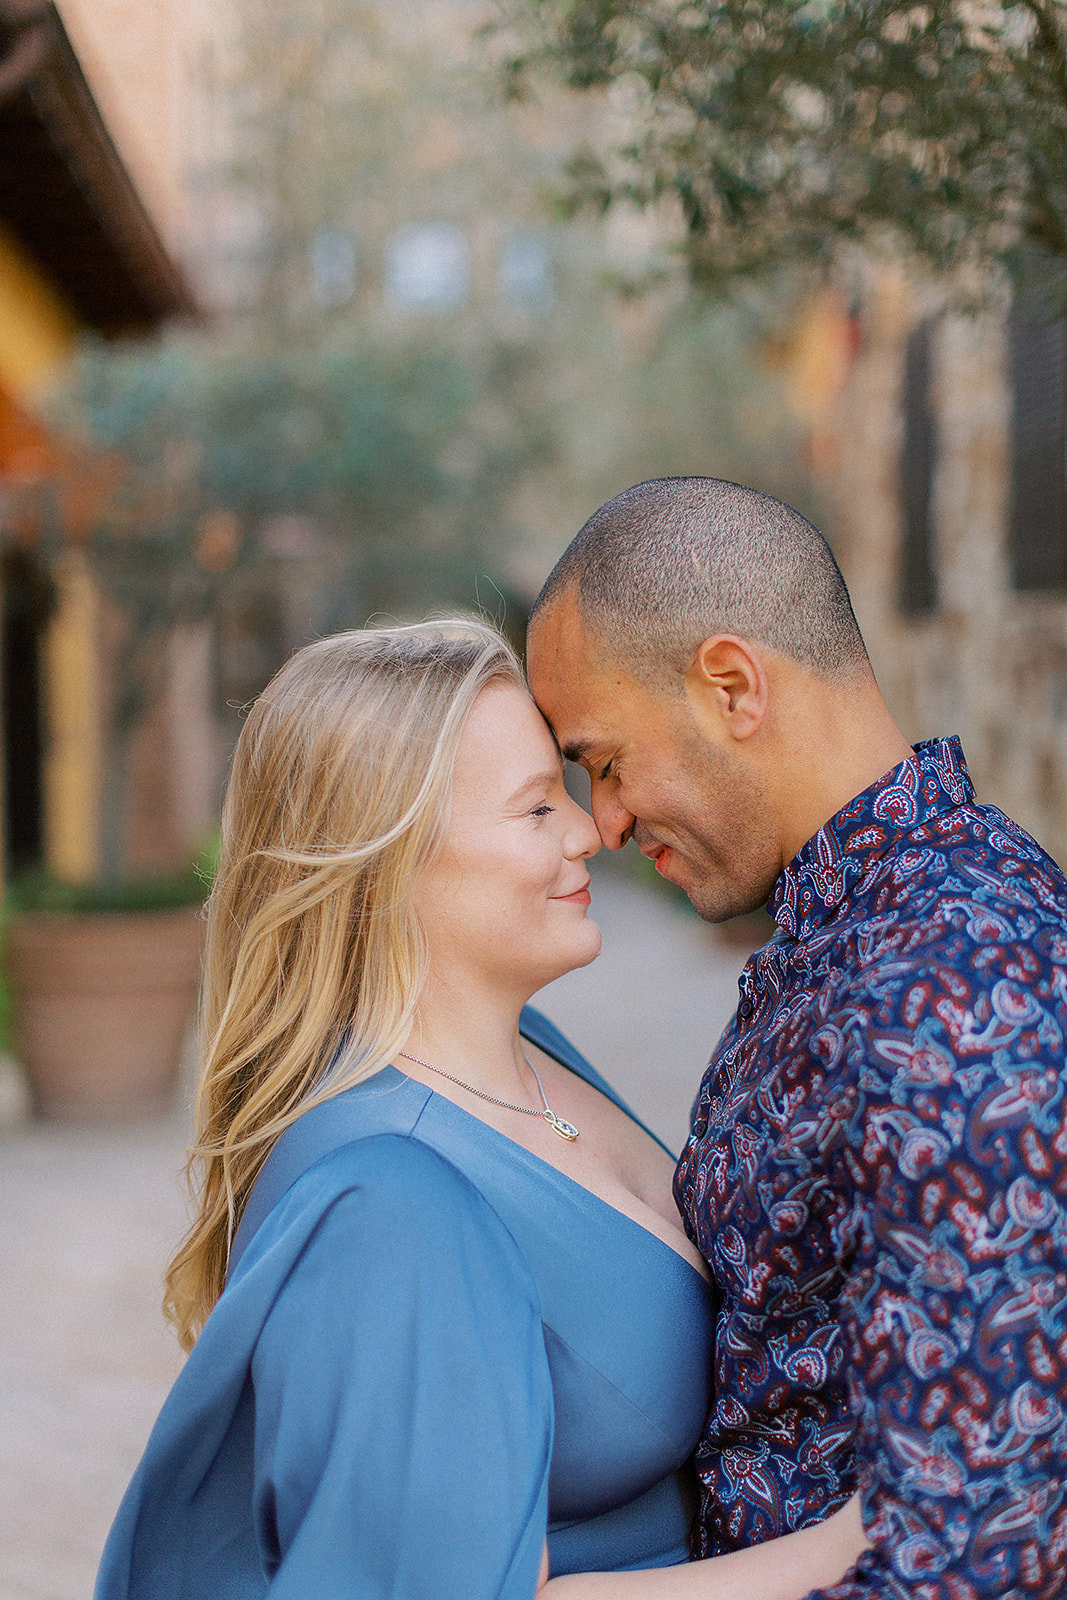 Rachel_+_Manny_Bello_Engagement_Session_Bella_Collina_Photographer_Casie_Marie_Photography-16